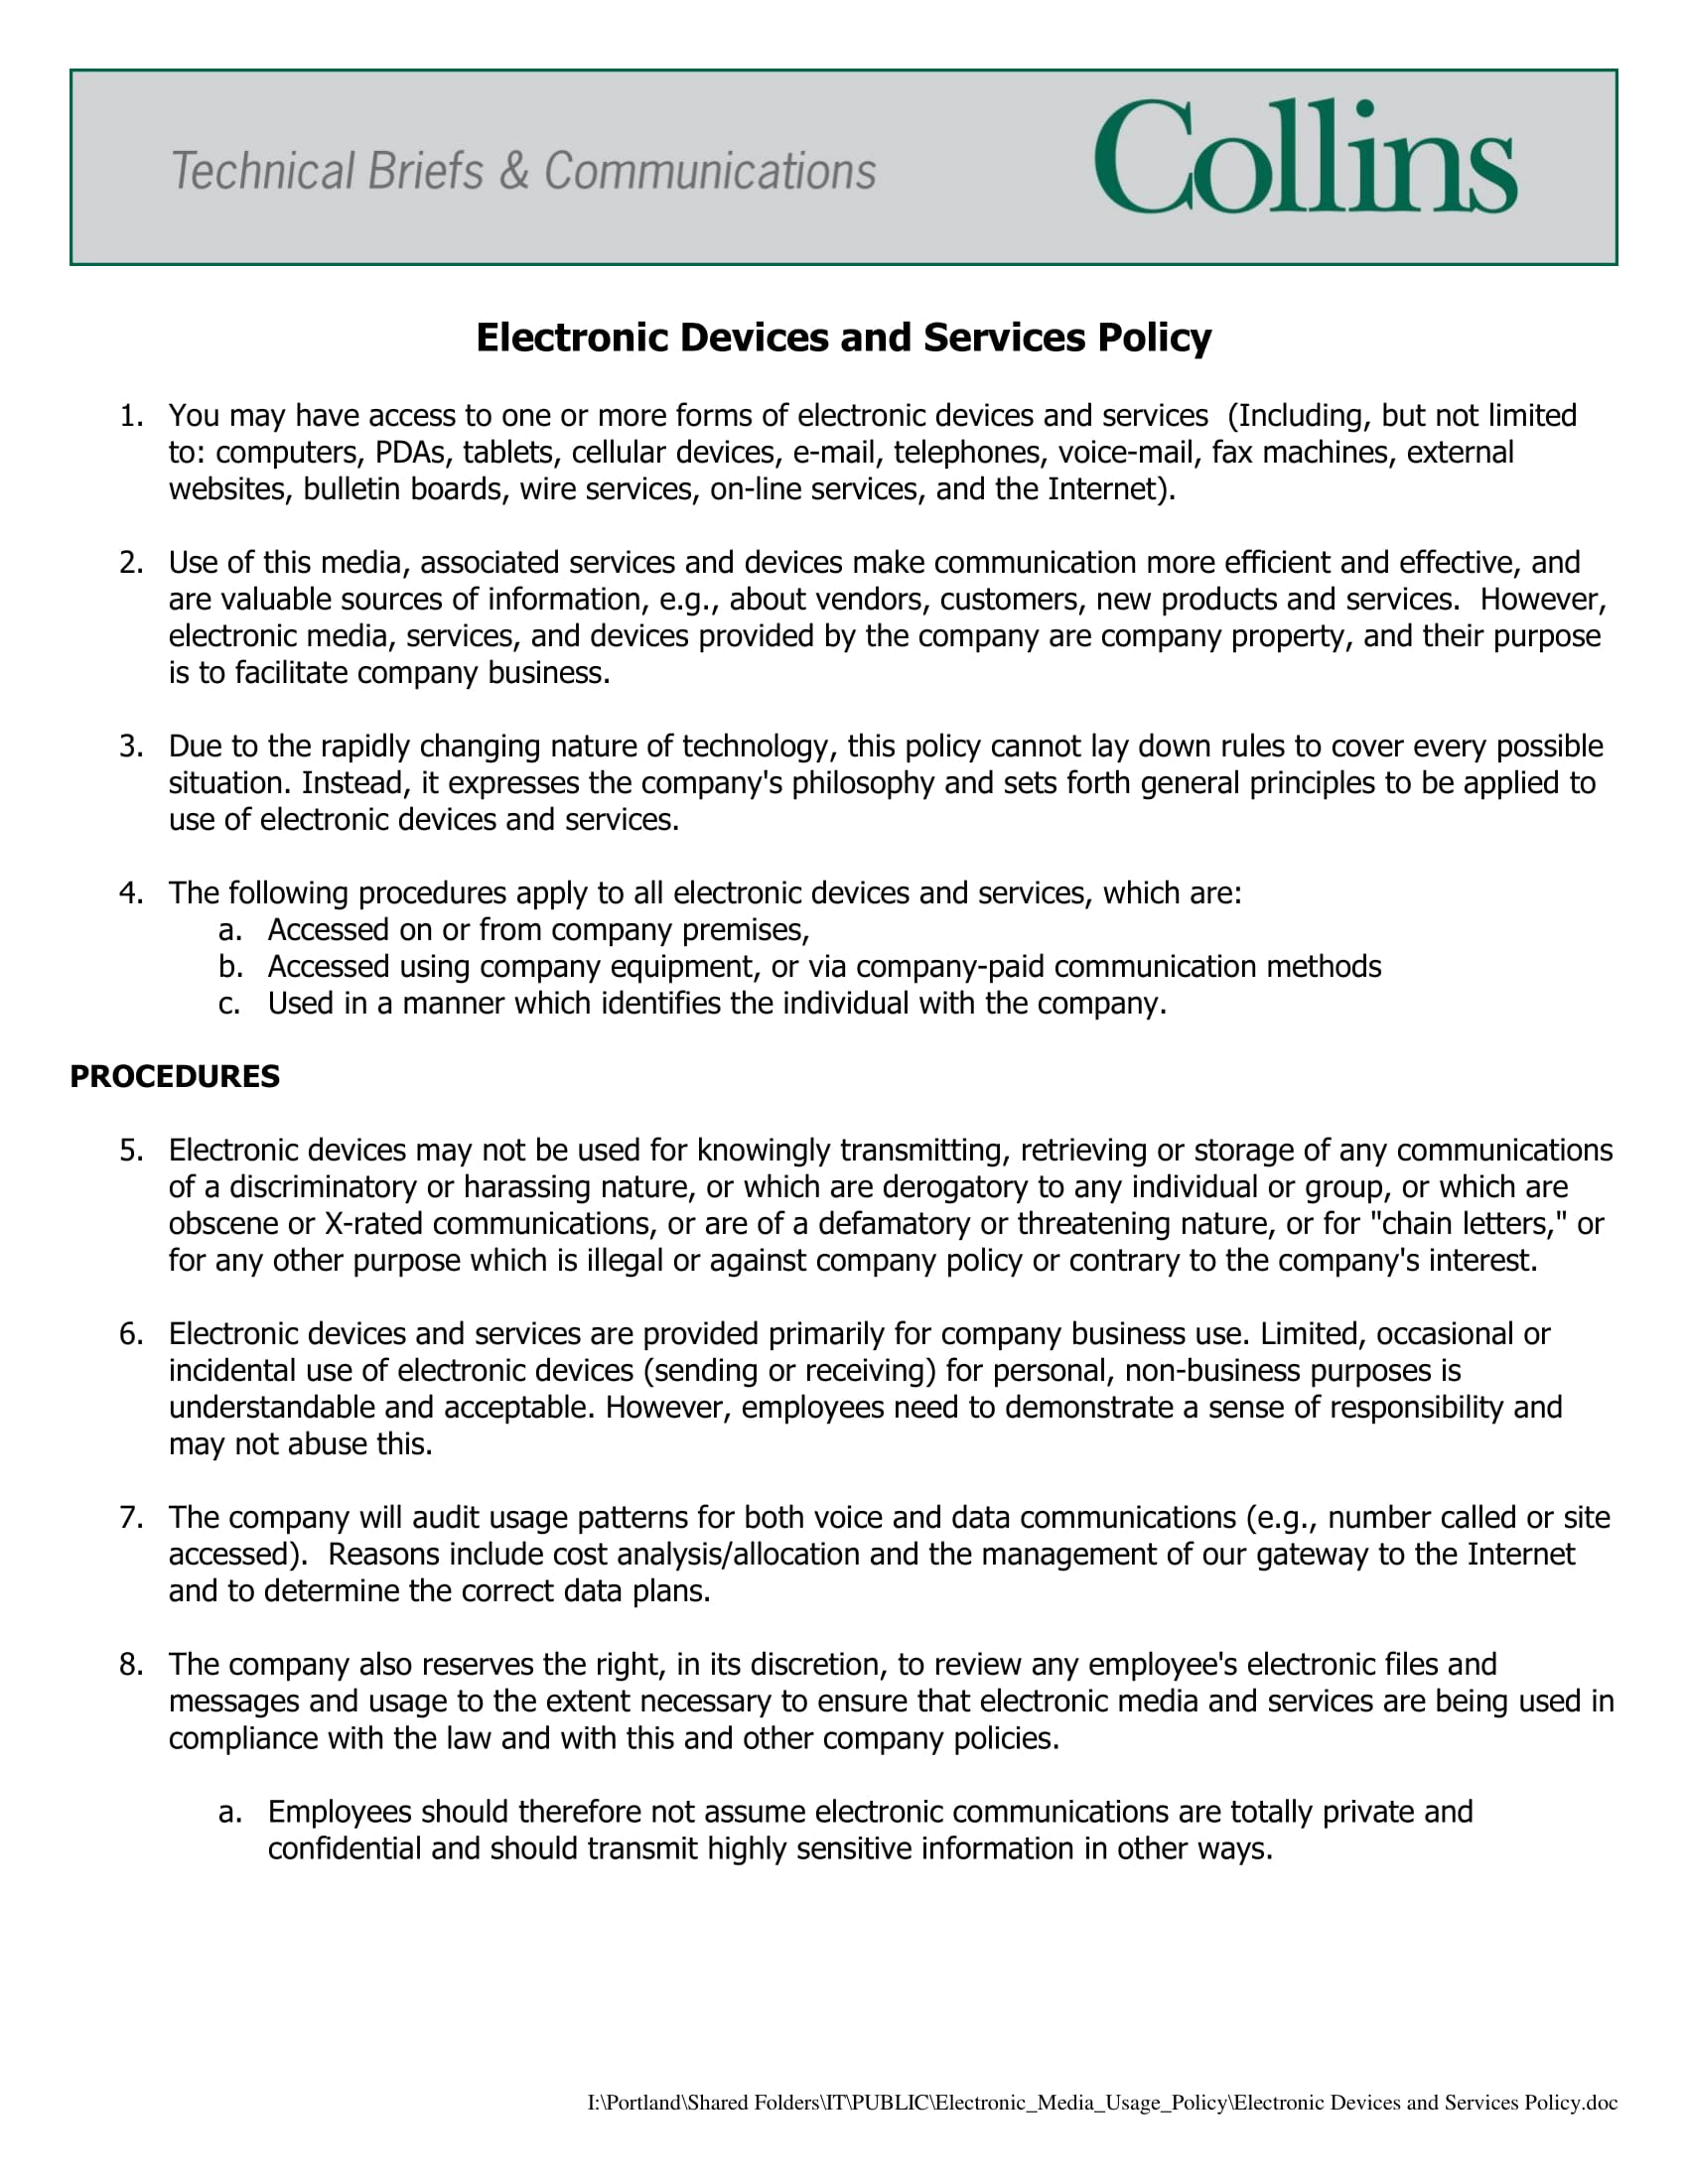 14 employee email policy examples pdf for Company email policy template